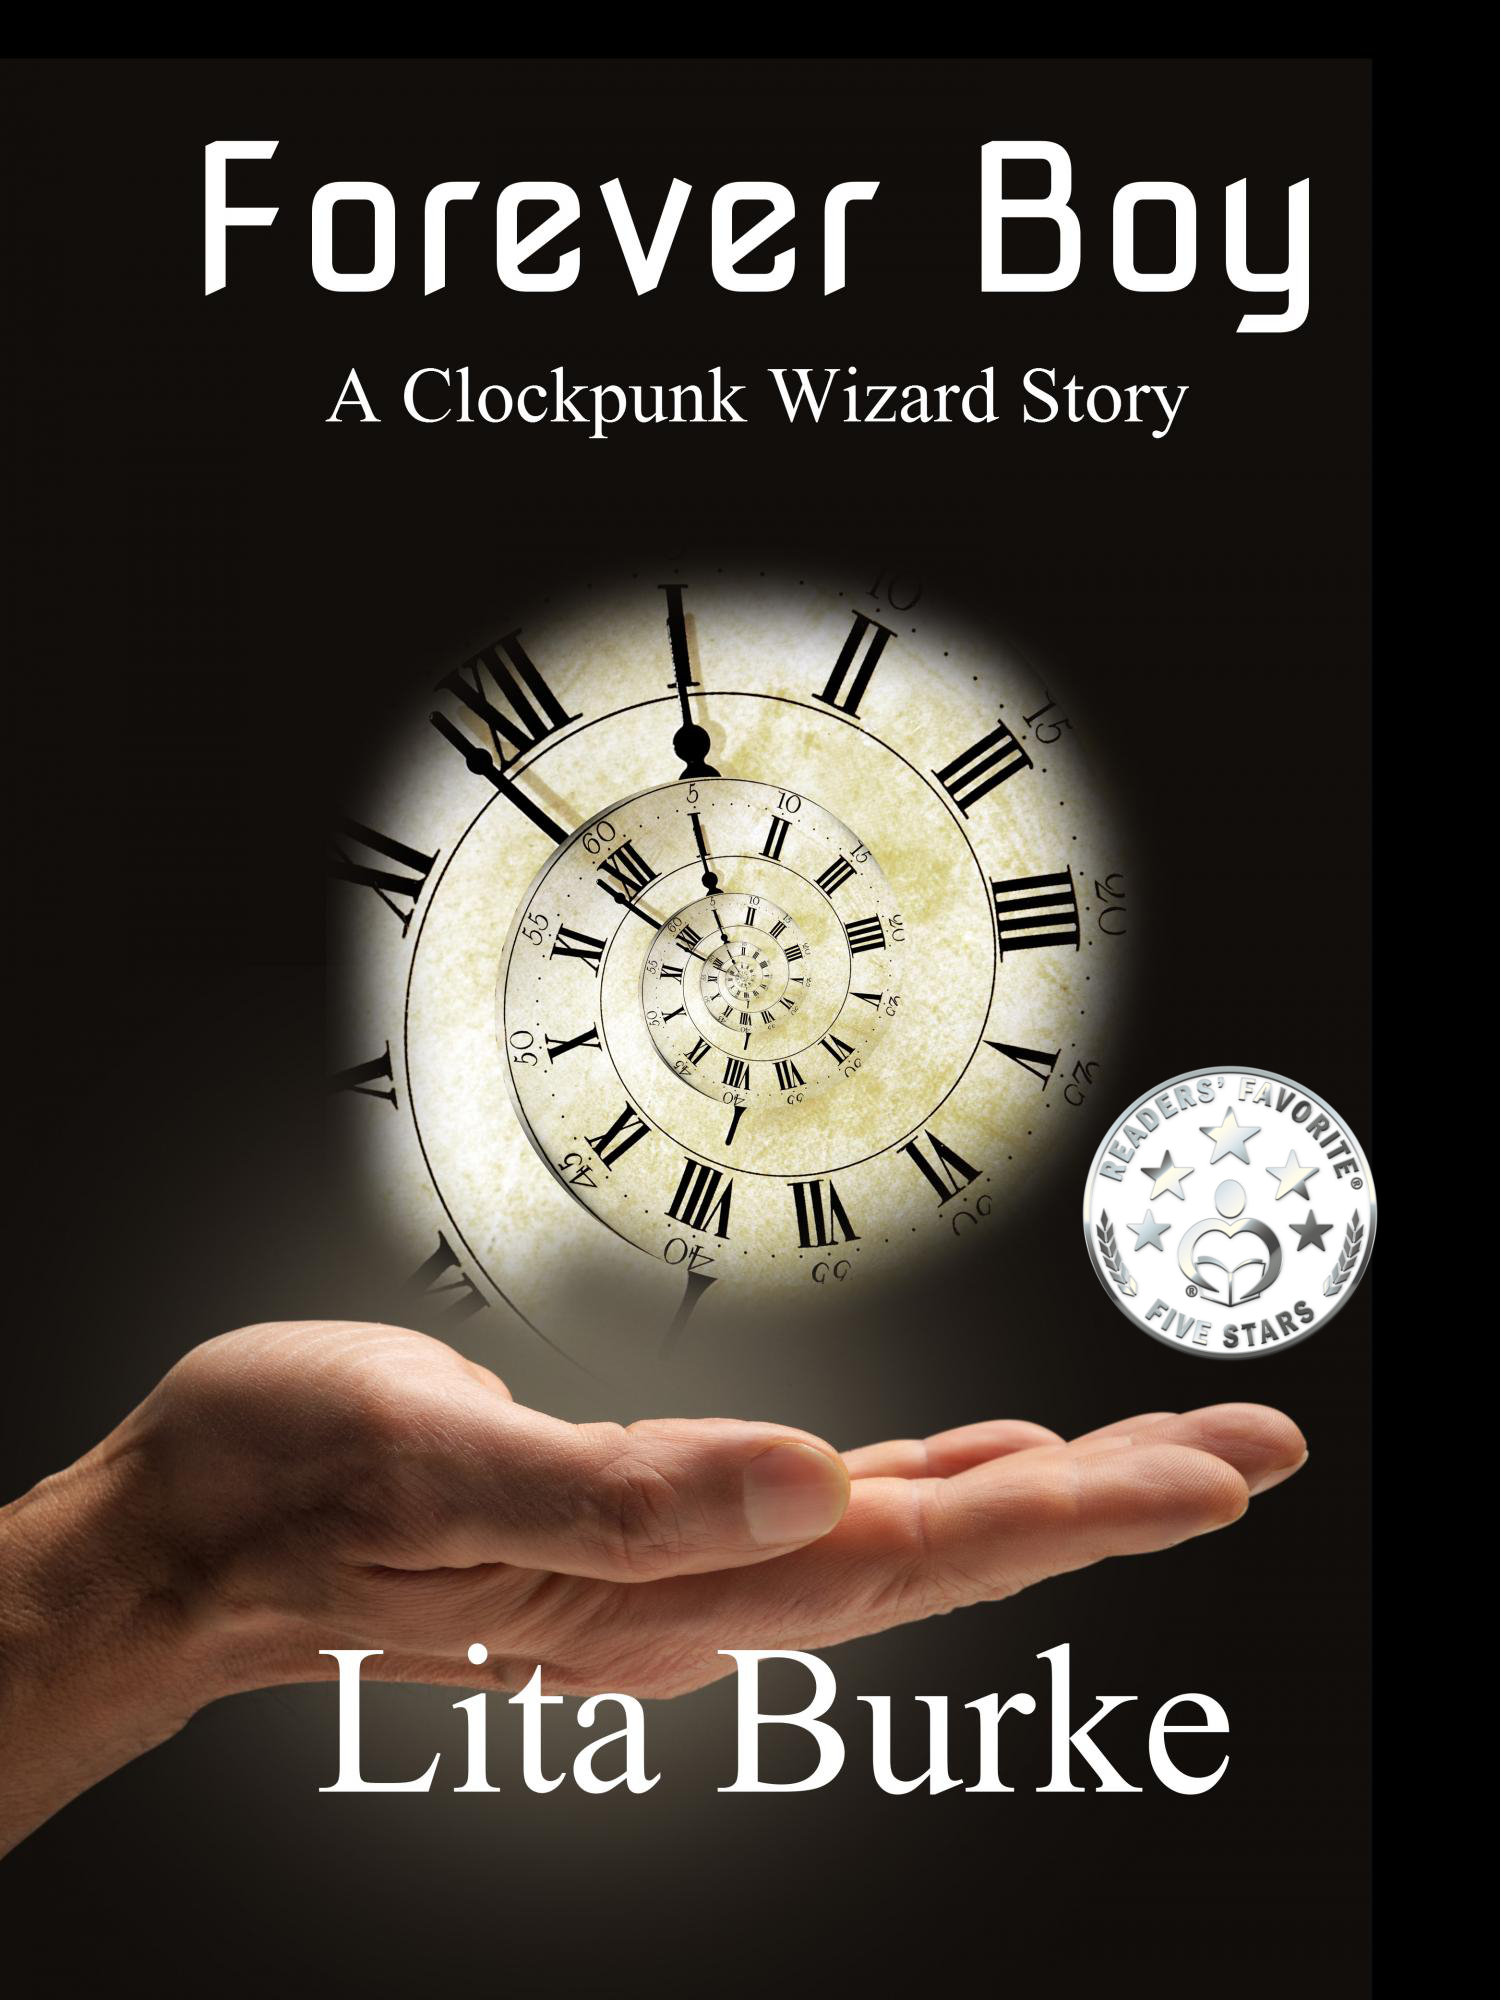 see clockpunk wizardry fantasy author lita